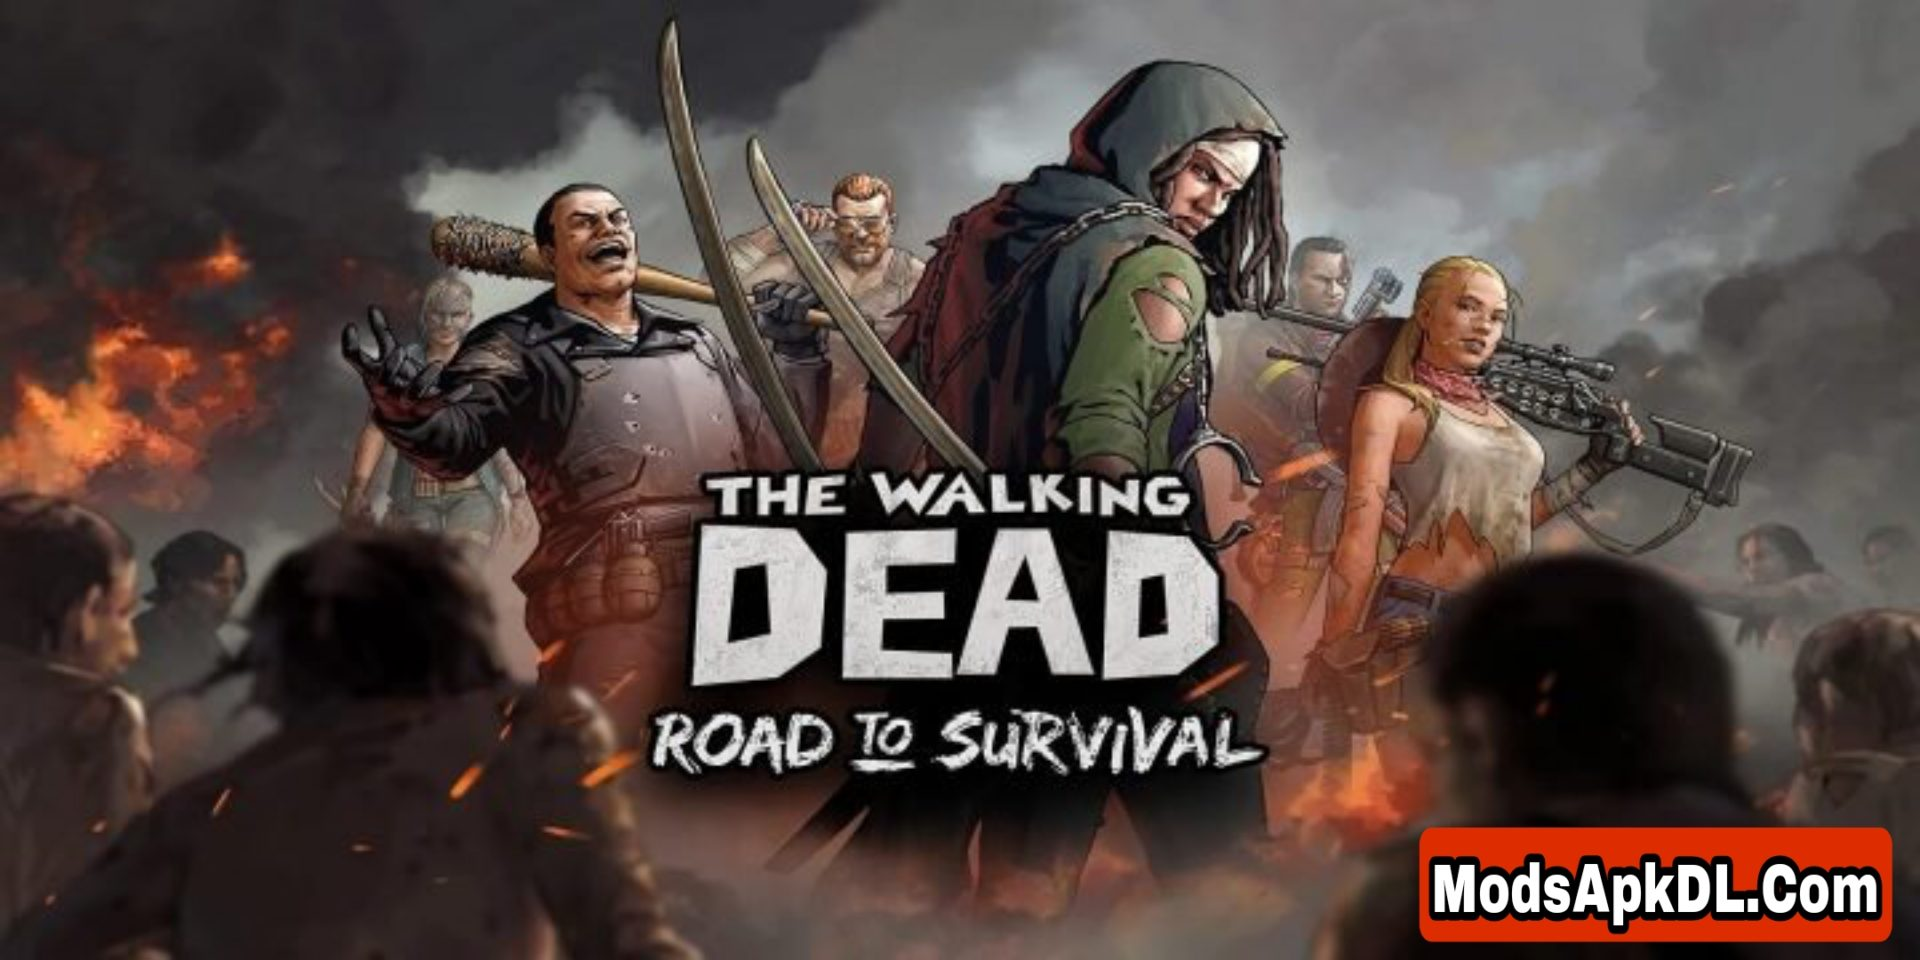 The Walking Dead: Road to Survival MOD APK Free Download